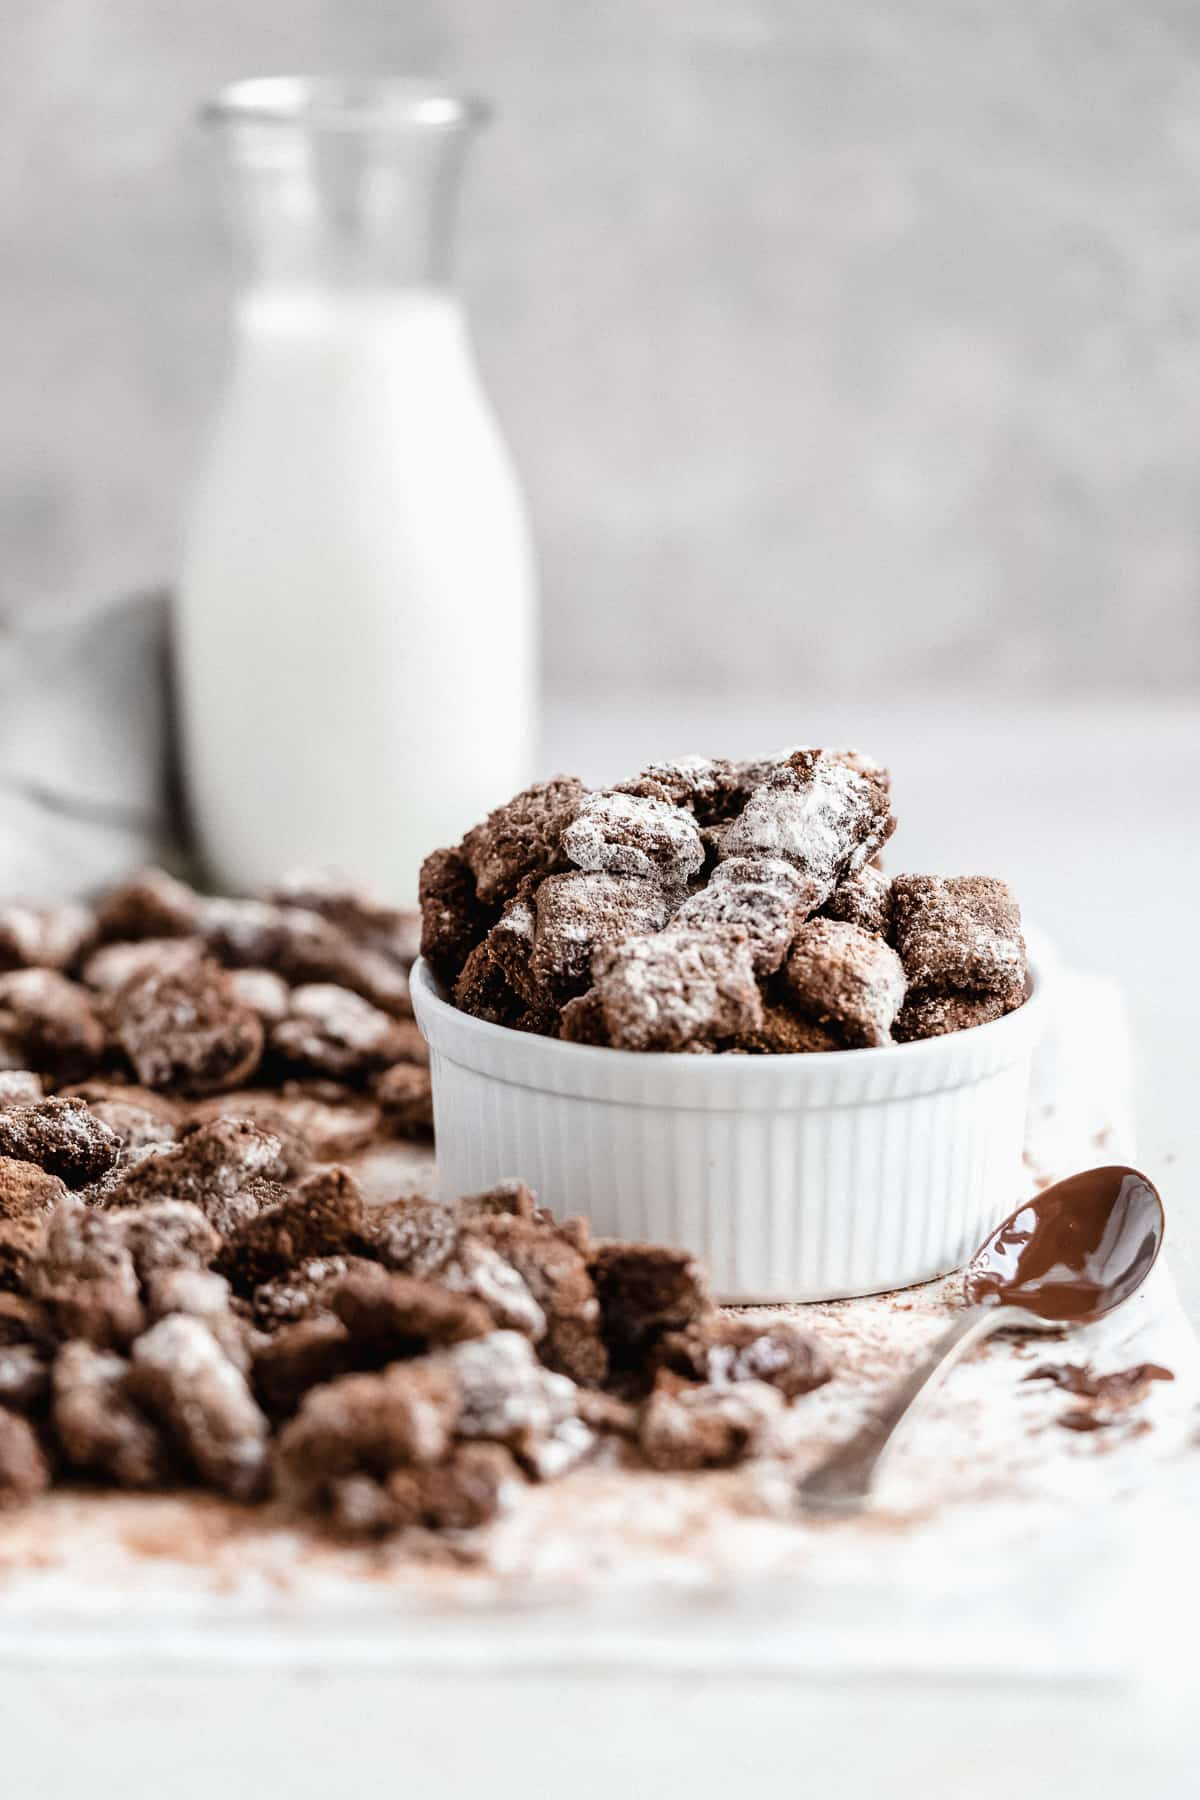 Side view photo of a white ramekin filled with Healthy Puppy Chow.  Additional Puppy Chow pieces are laying nearby.  A carafe of milk is in the background.